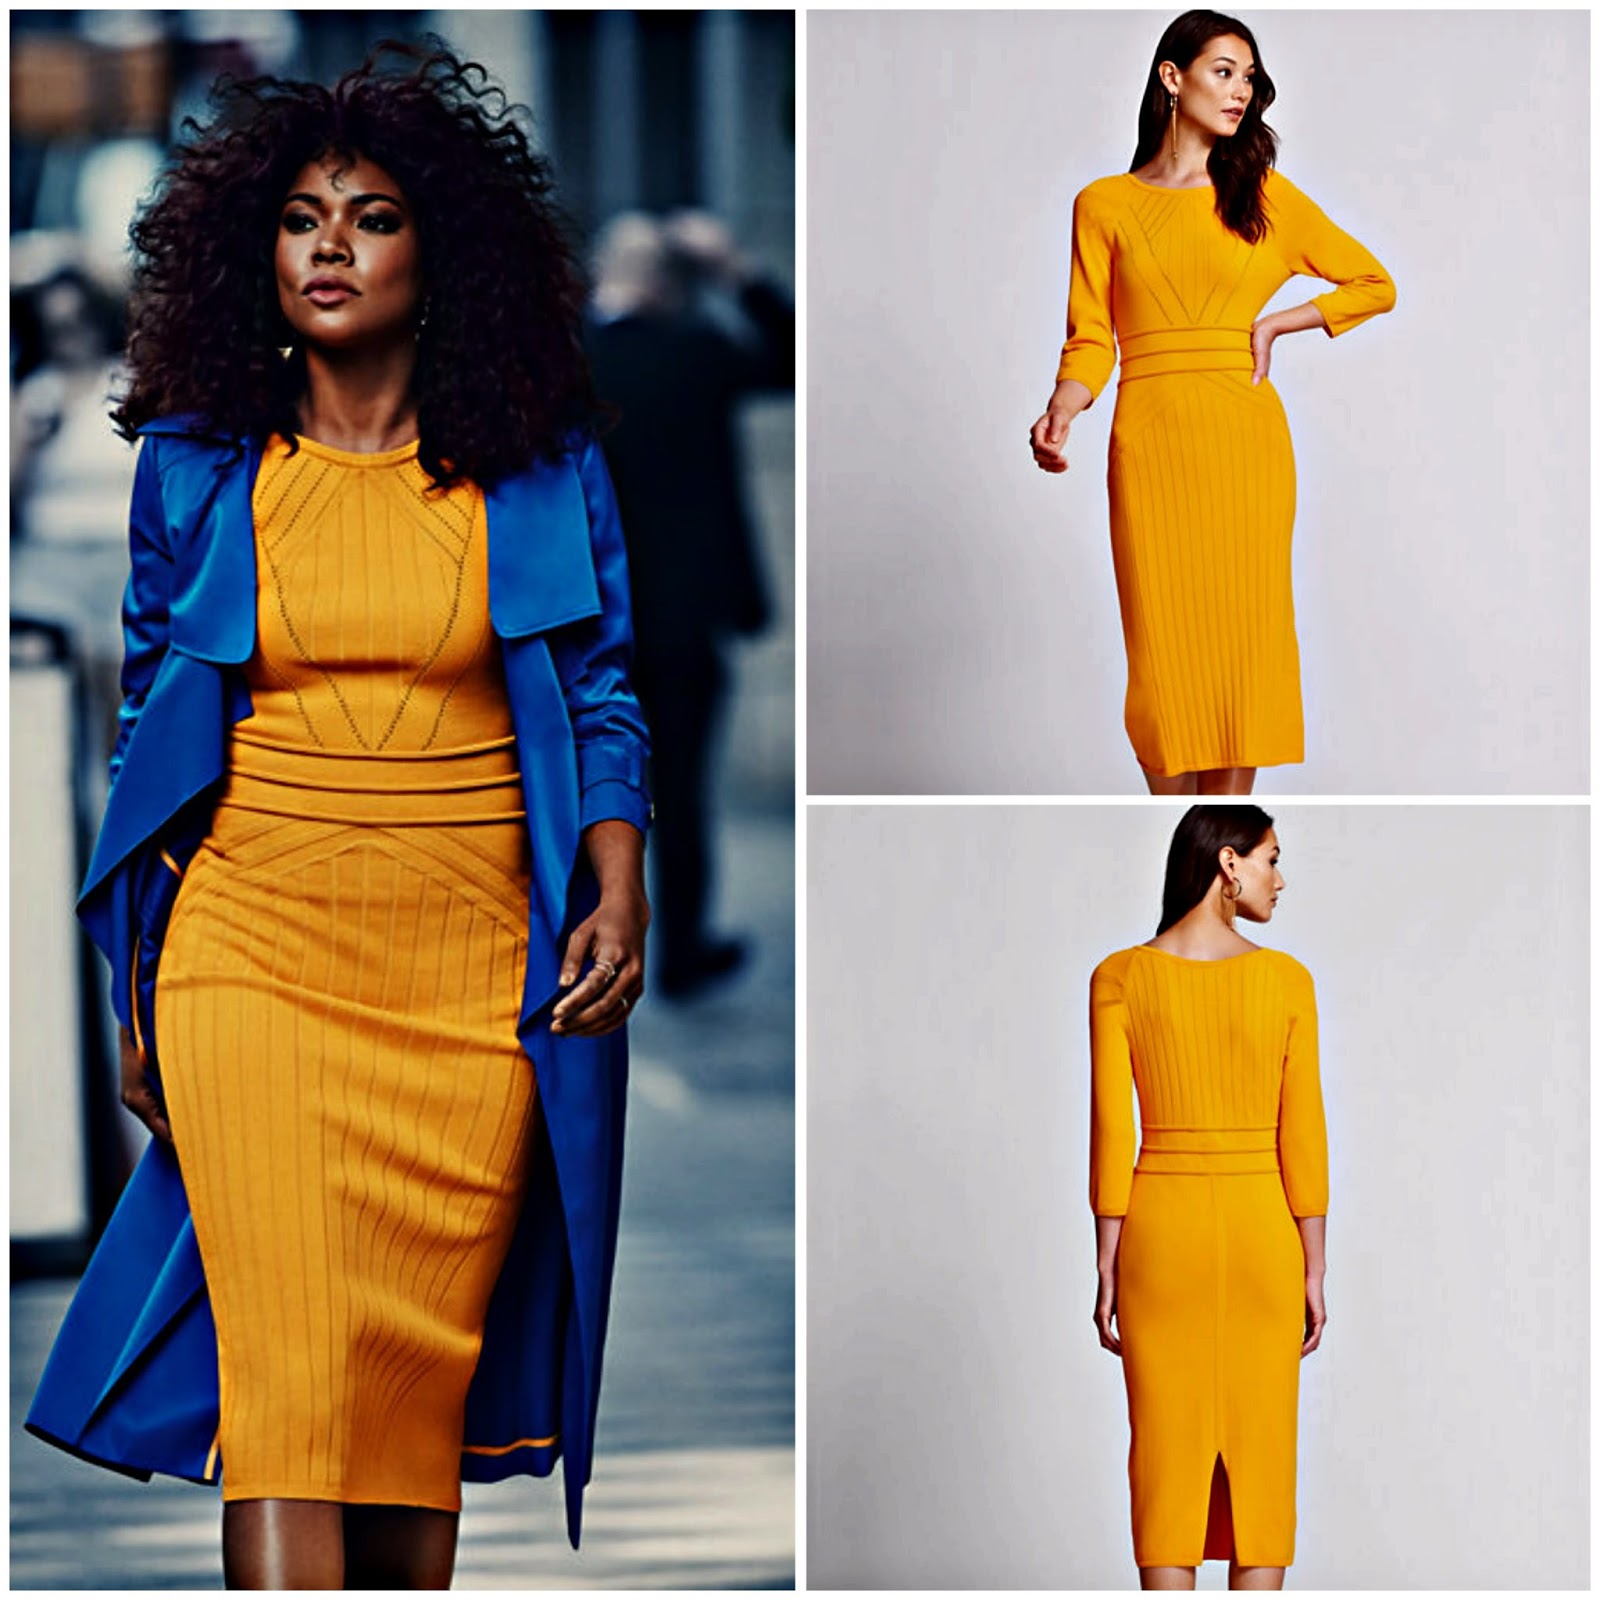 Click here to buy GABRIELLE UNION COLLECTION - STITCHED SWEATER DRESS, which is now on sale!